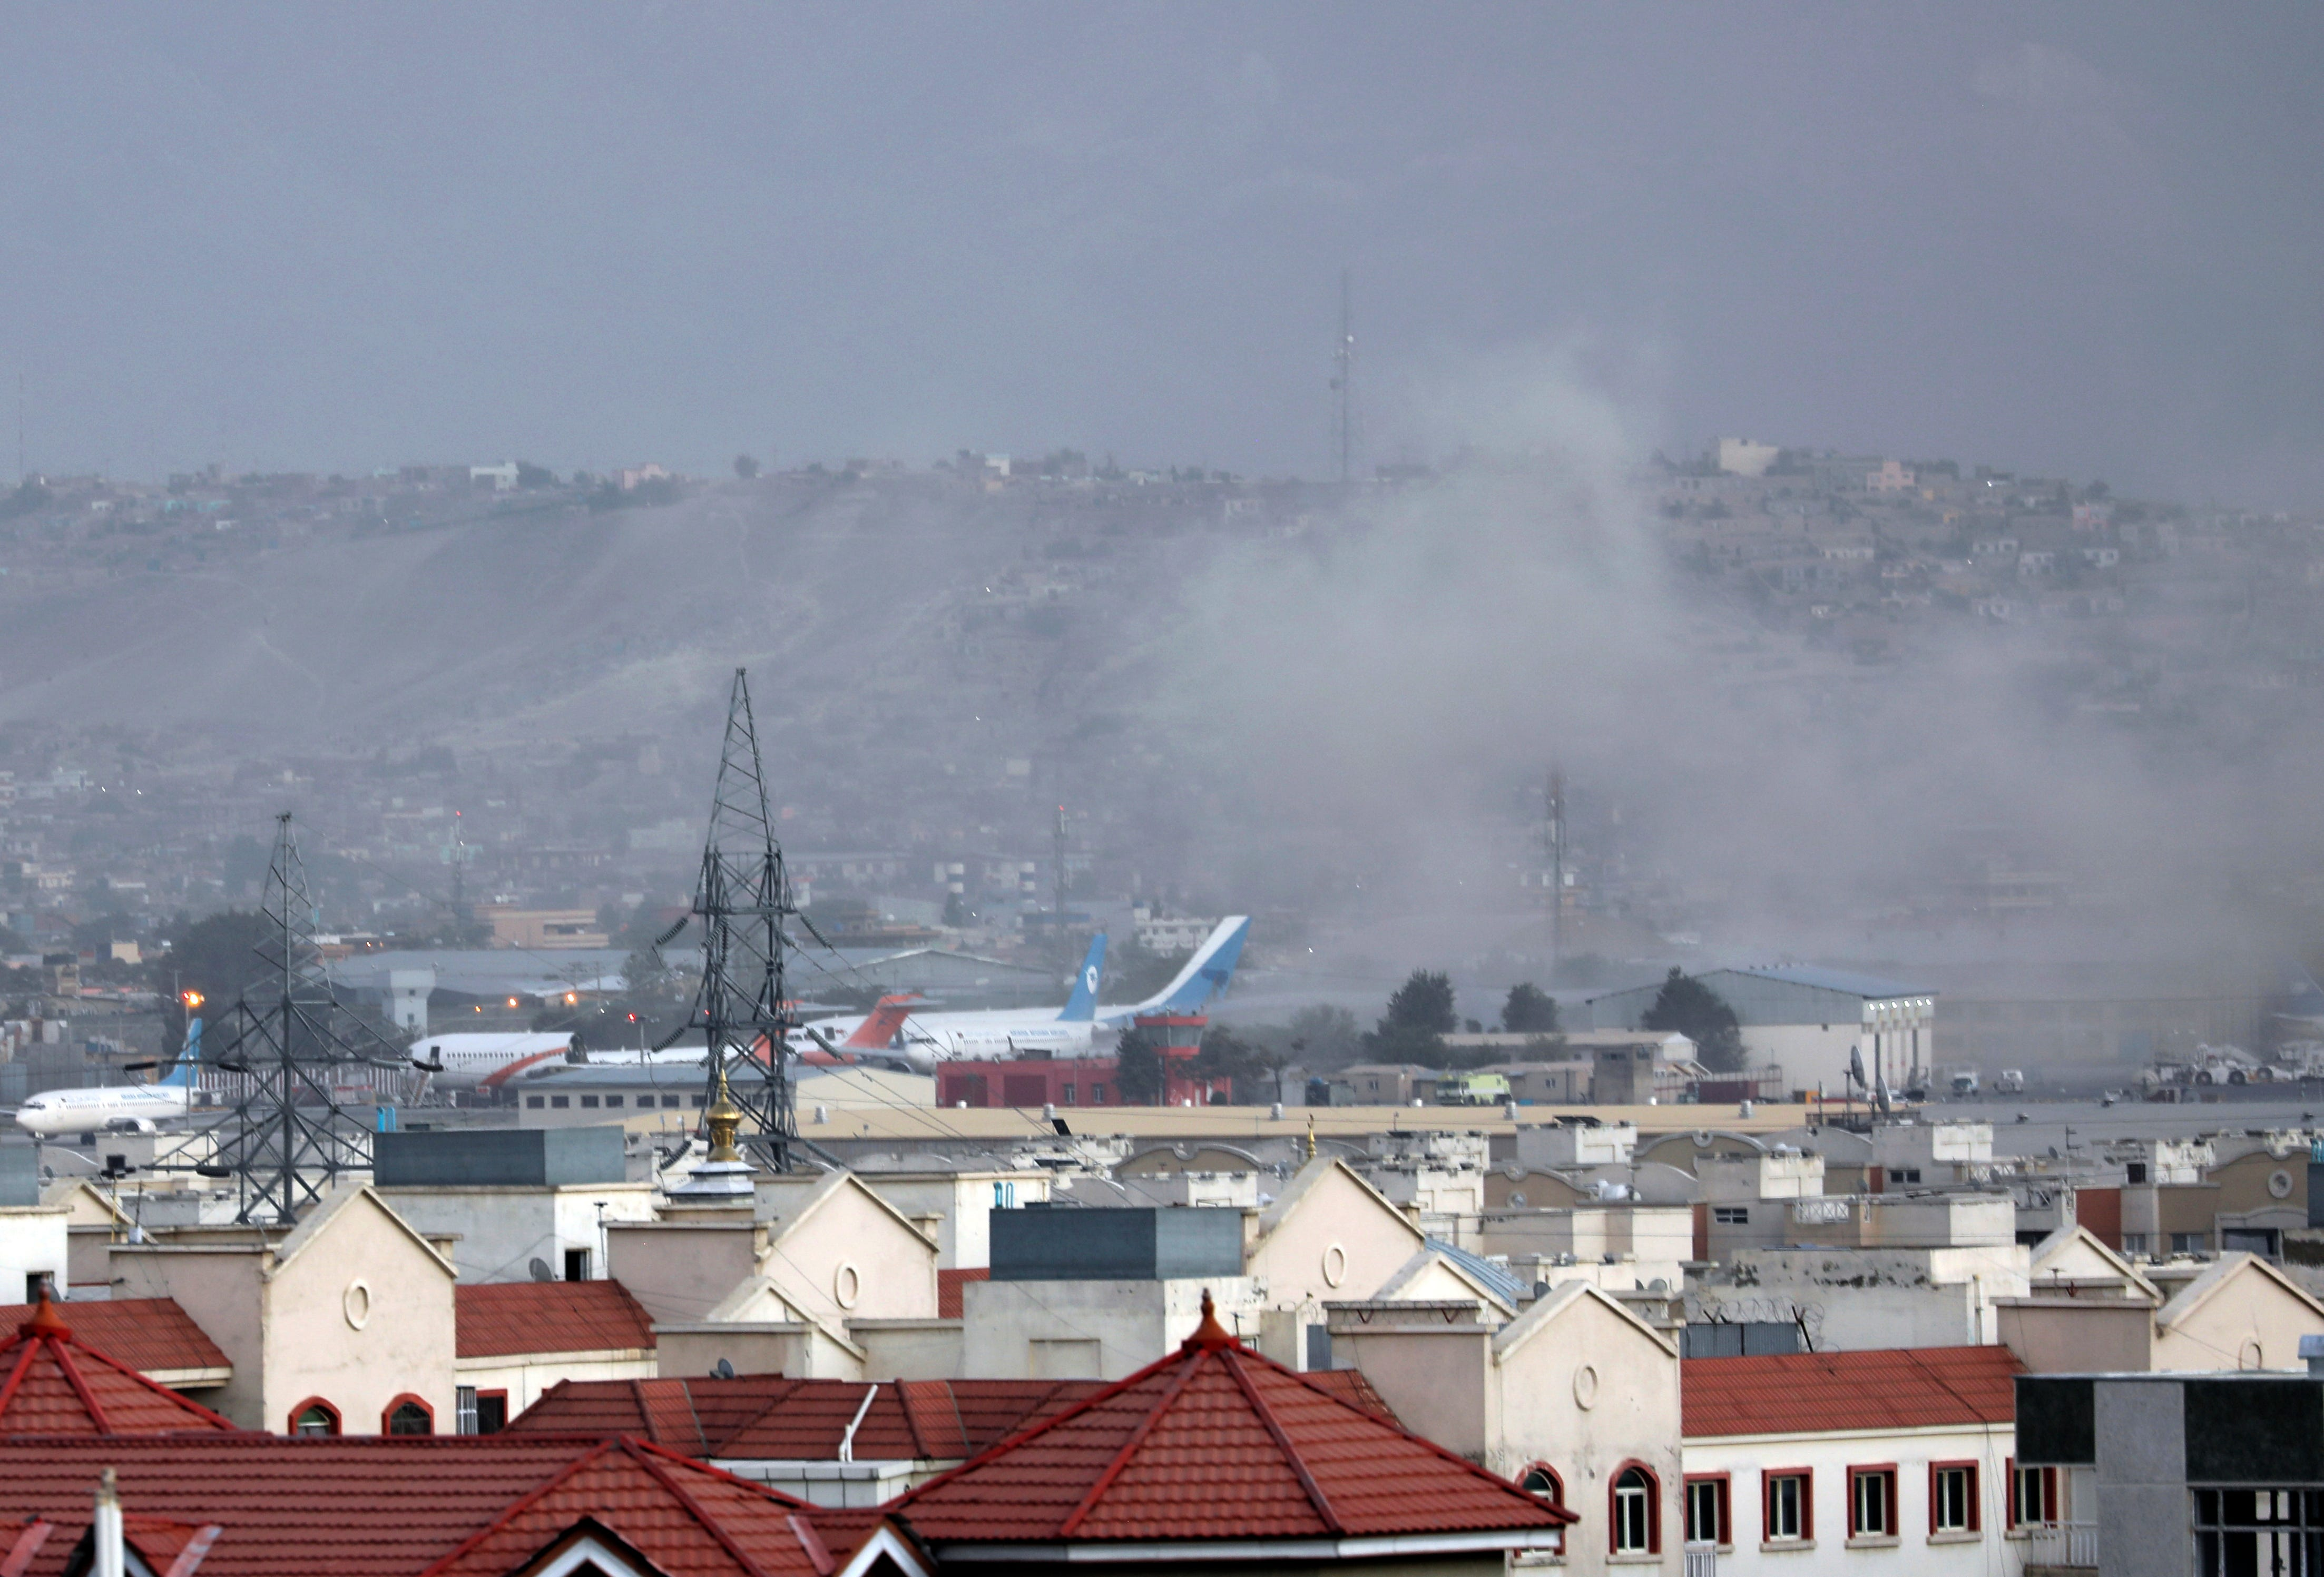 Desperate crowds, closed gates, people stranded after bombing at Kabul airport